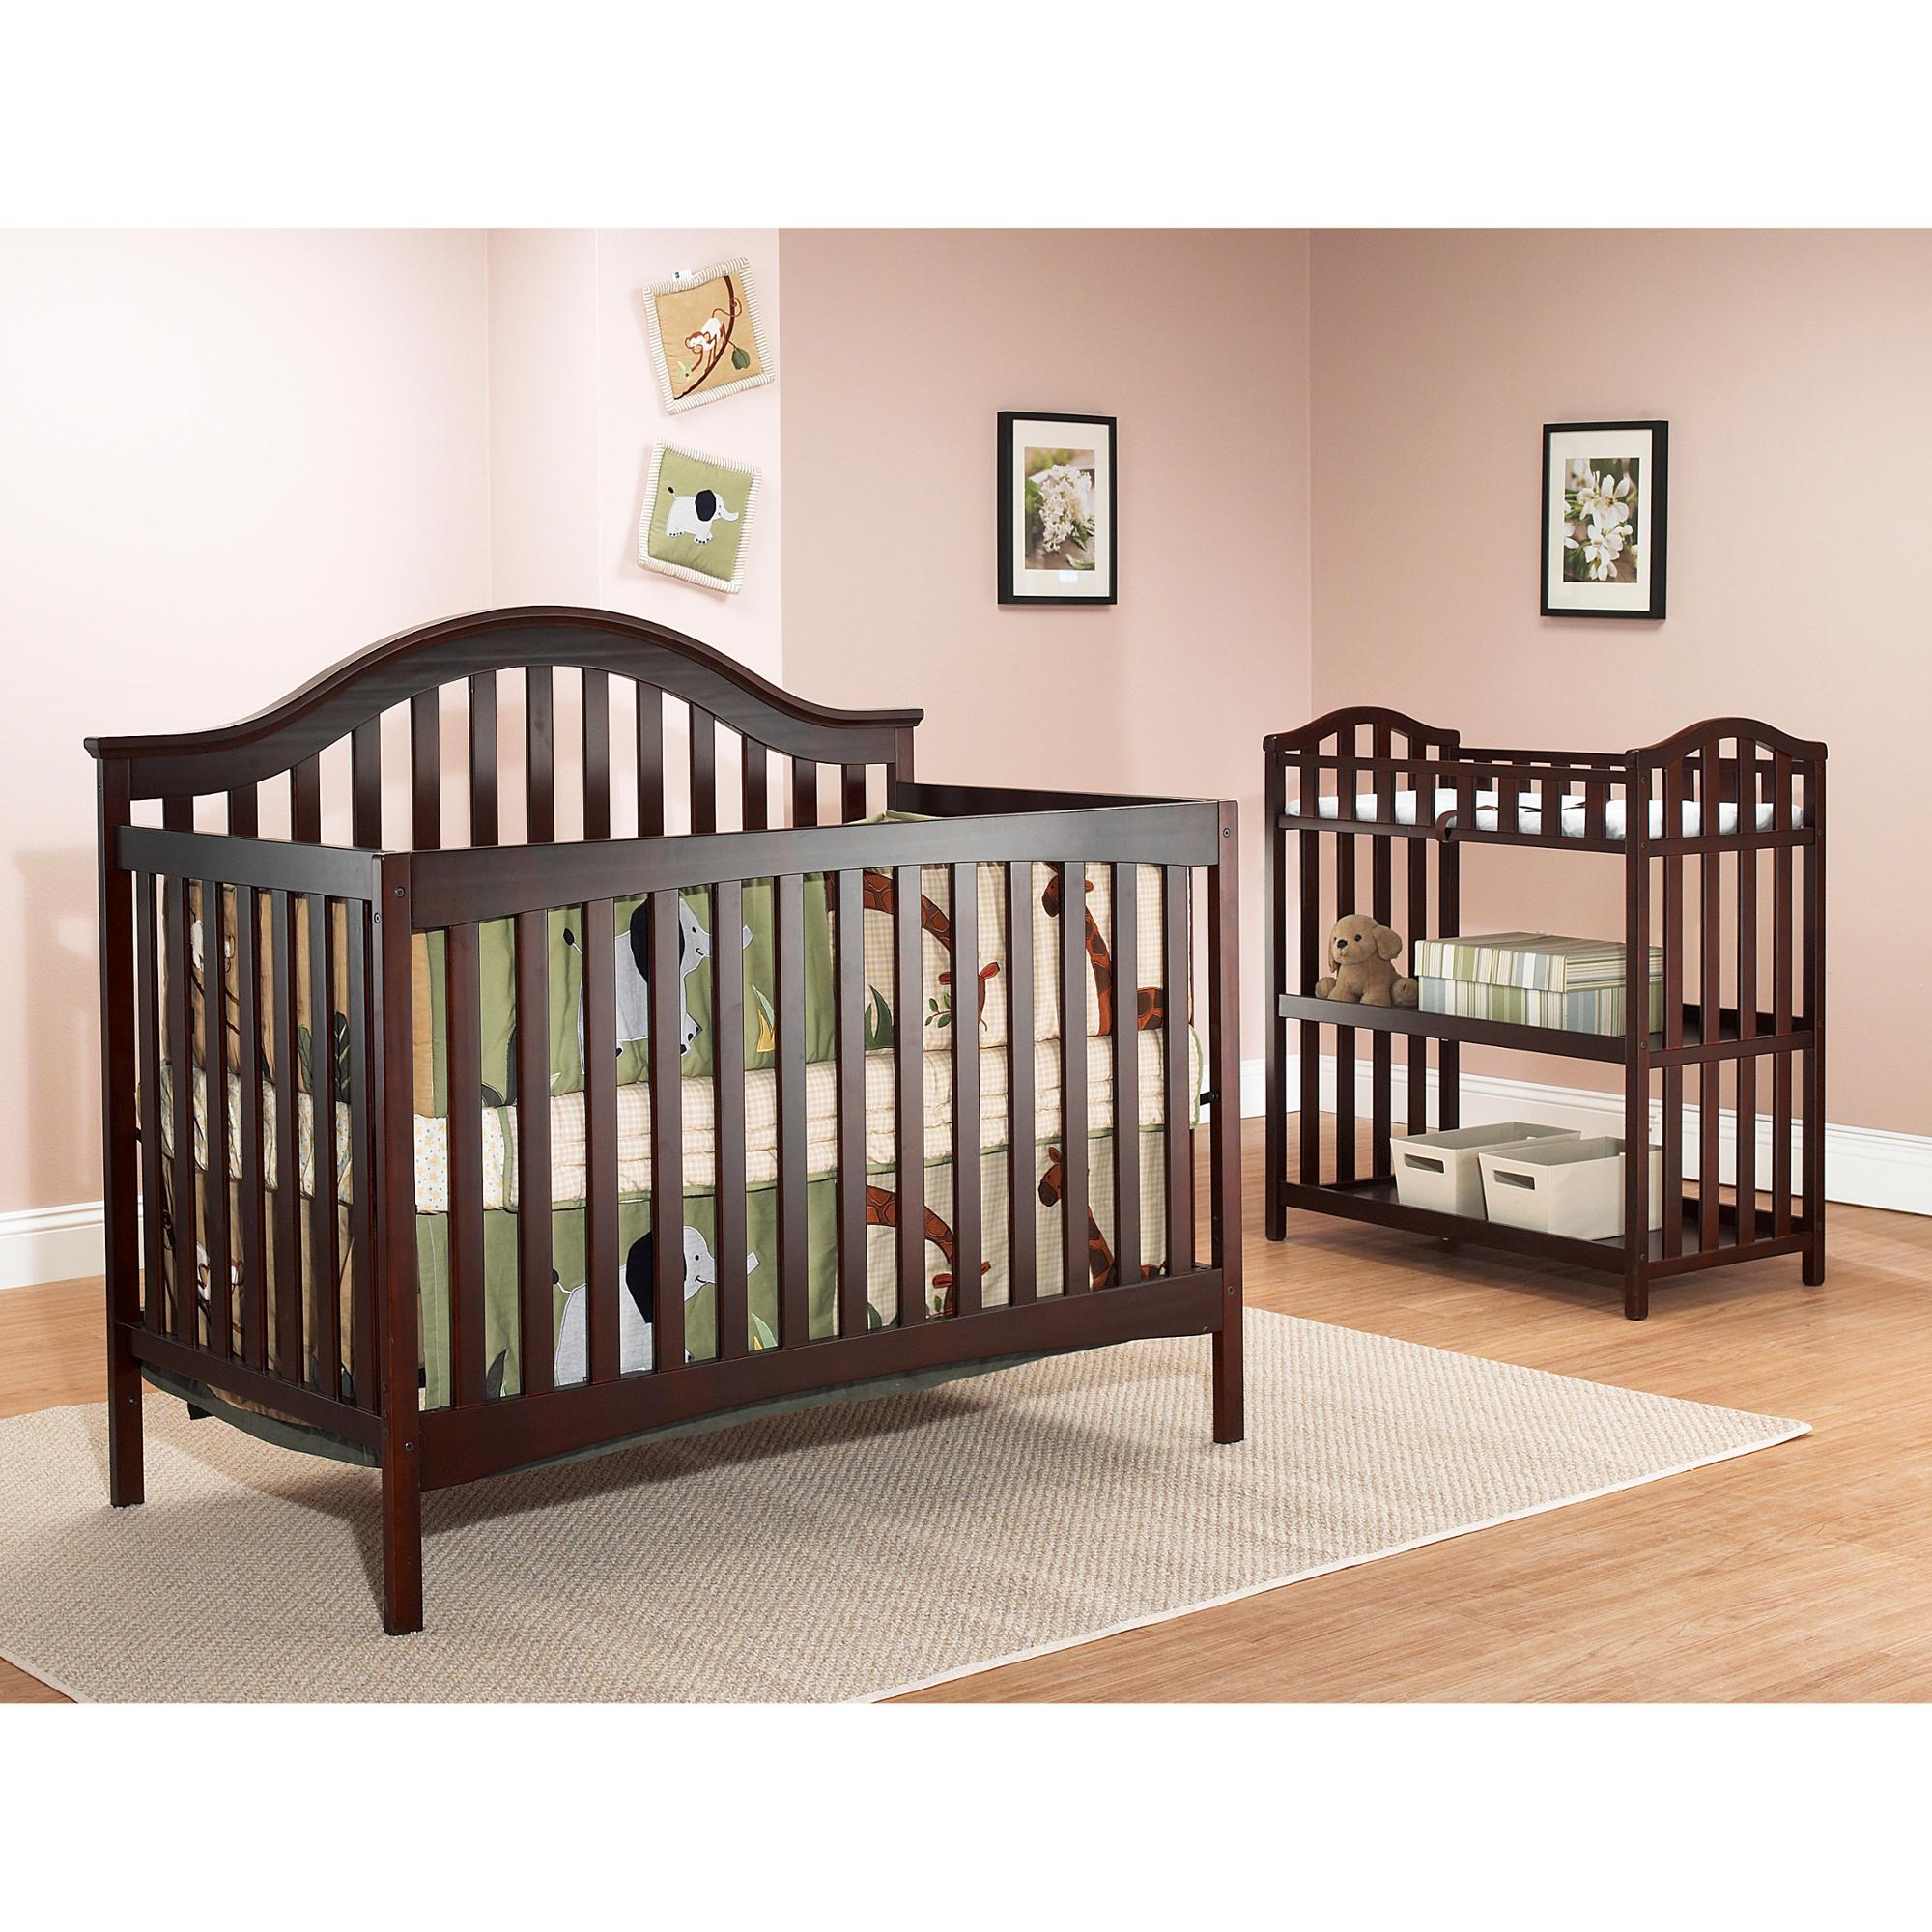 Wendy Bellissimo Crib | Bassett Baby Crib | Walmart Nursery Furniture